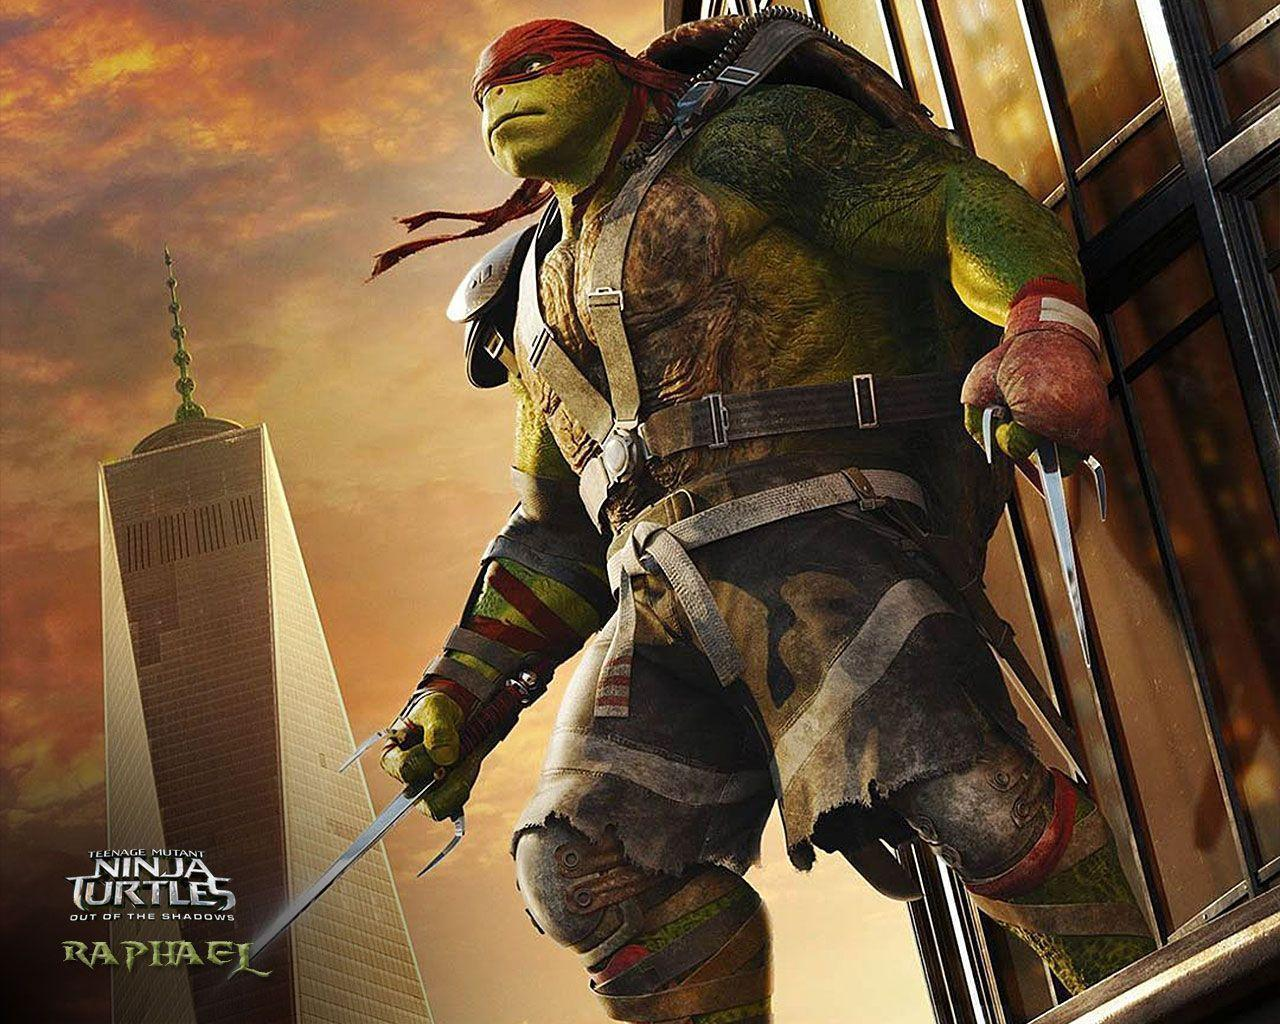 Teenage Mutant Ninja Turtles 2016 Wallpapers - Wallpaper Cave